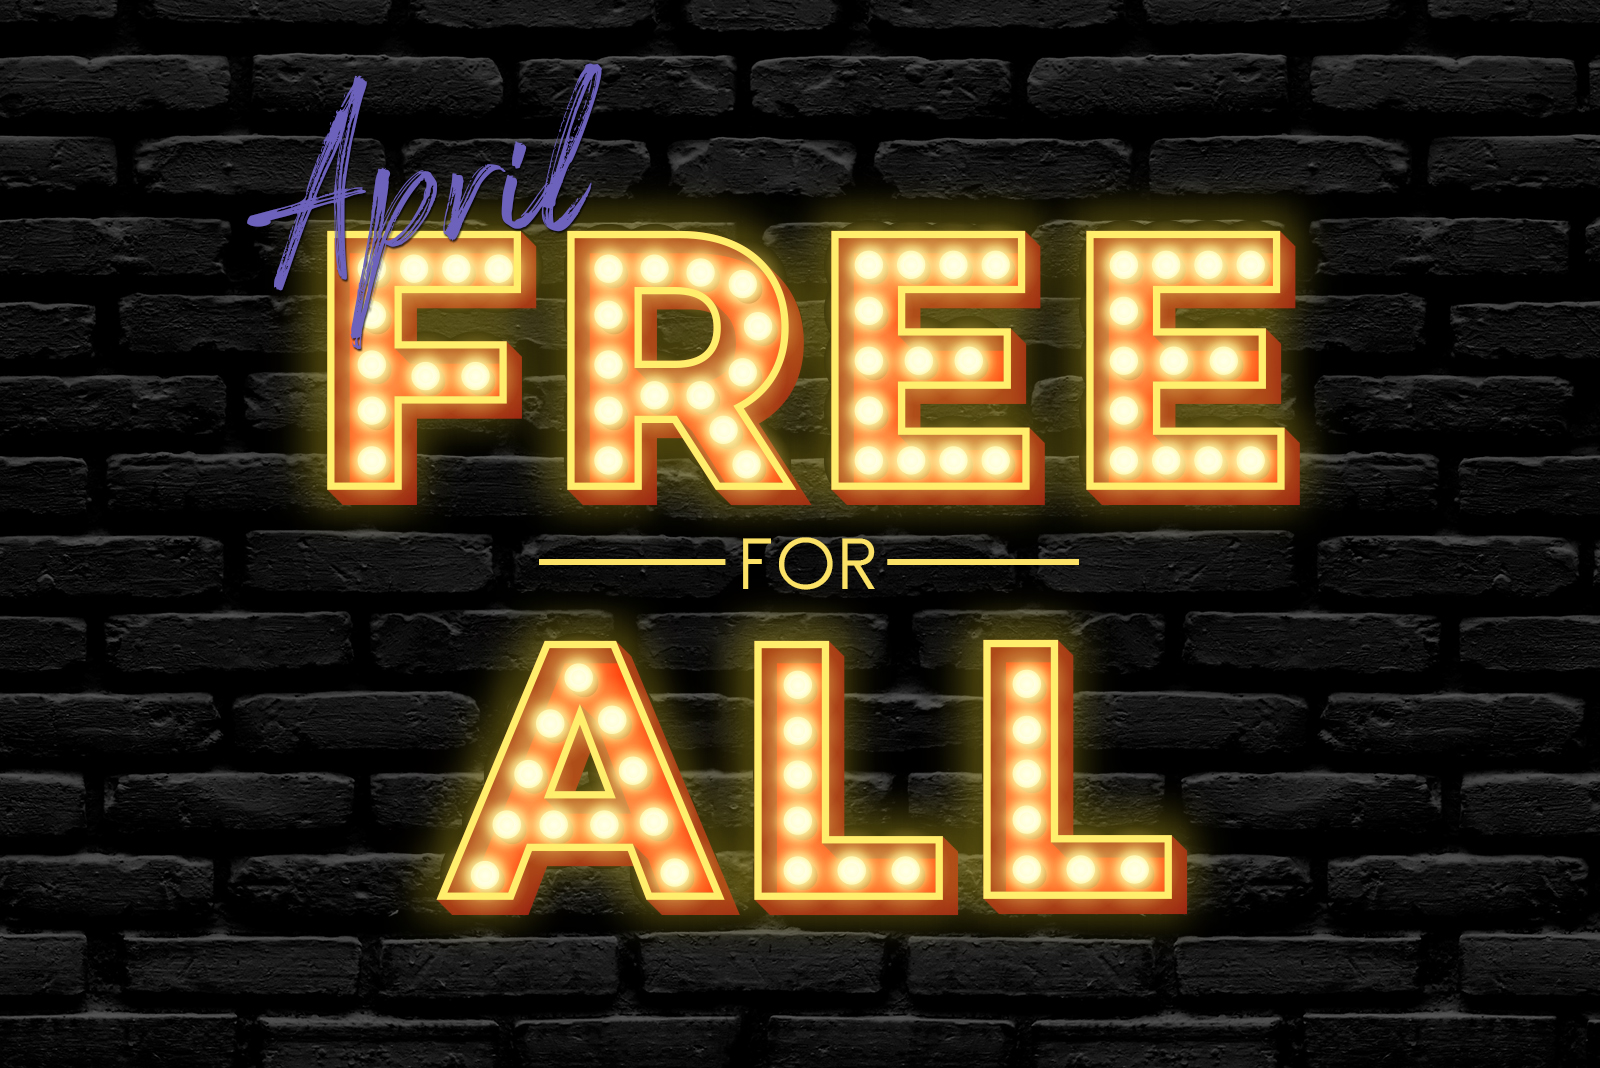 April 2021 free for all